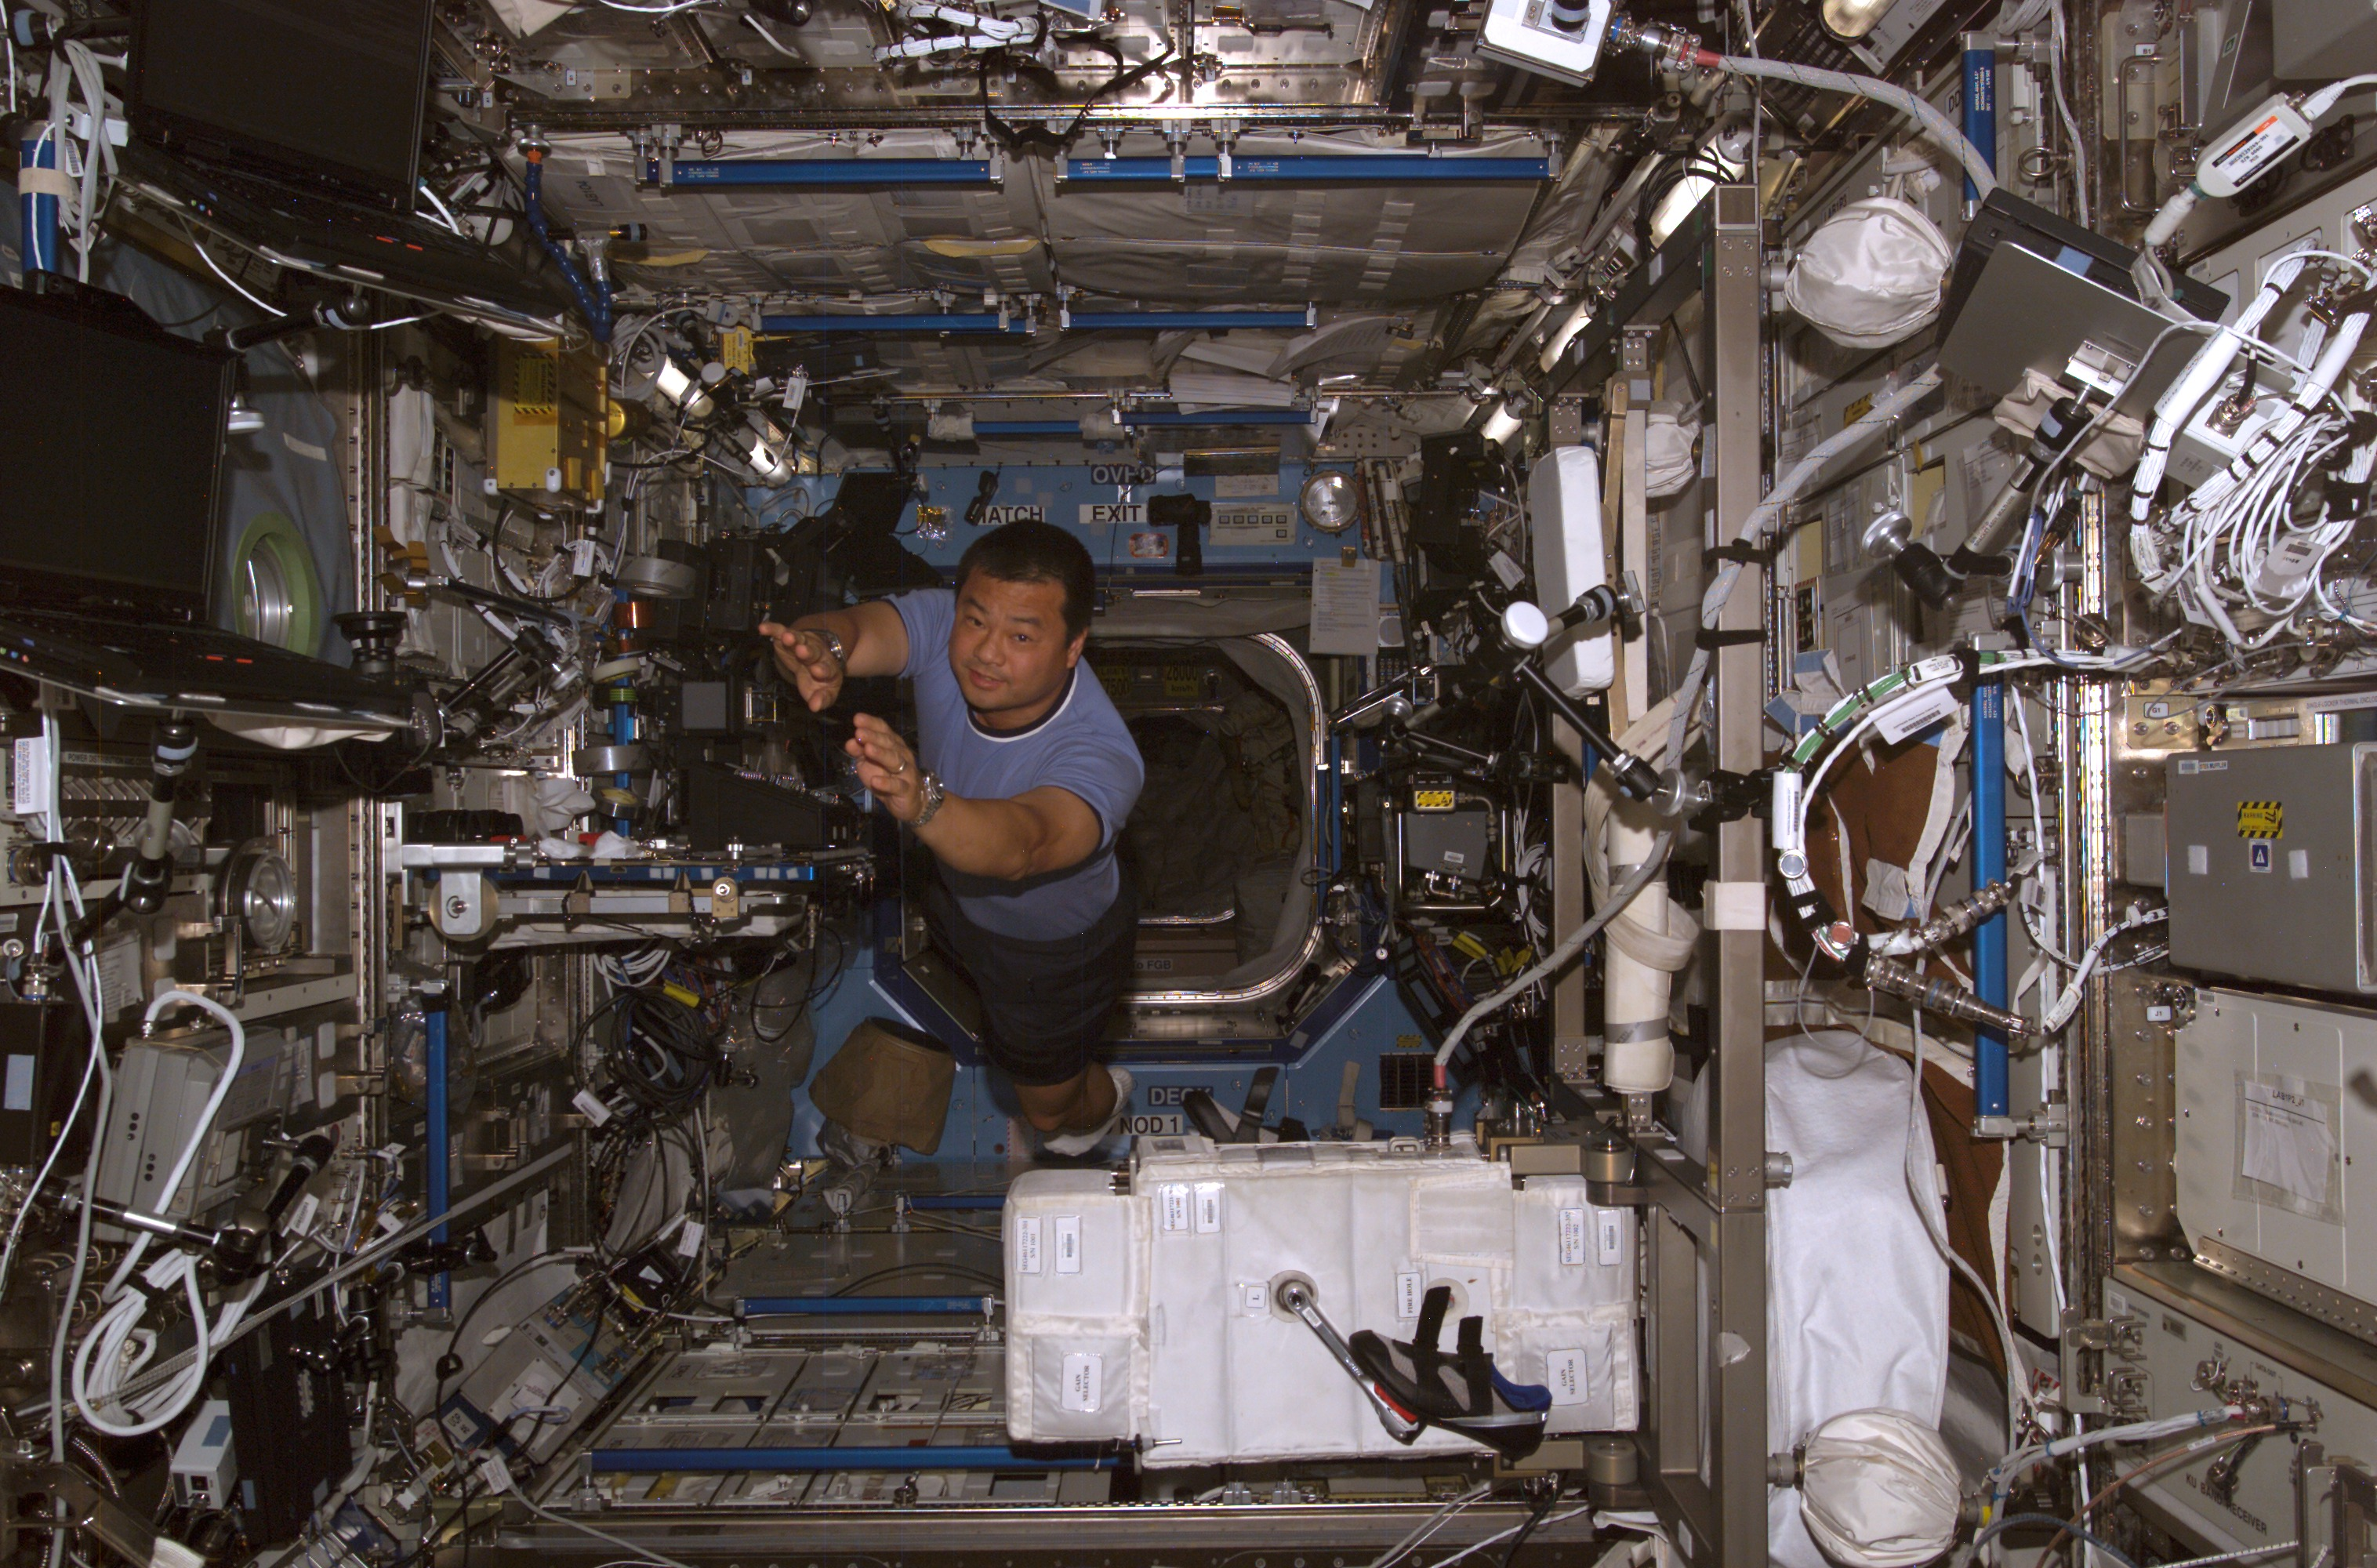 nasa space station inside - photo #22